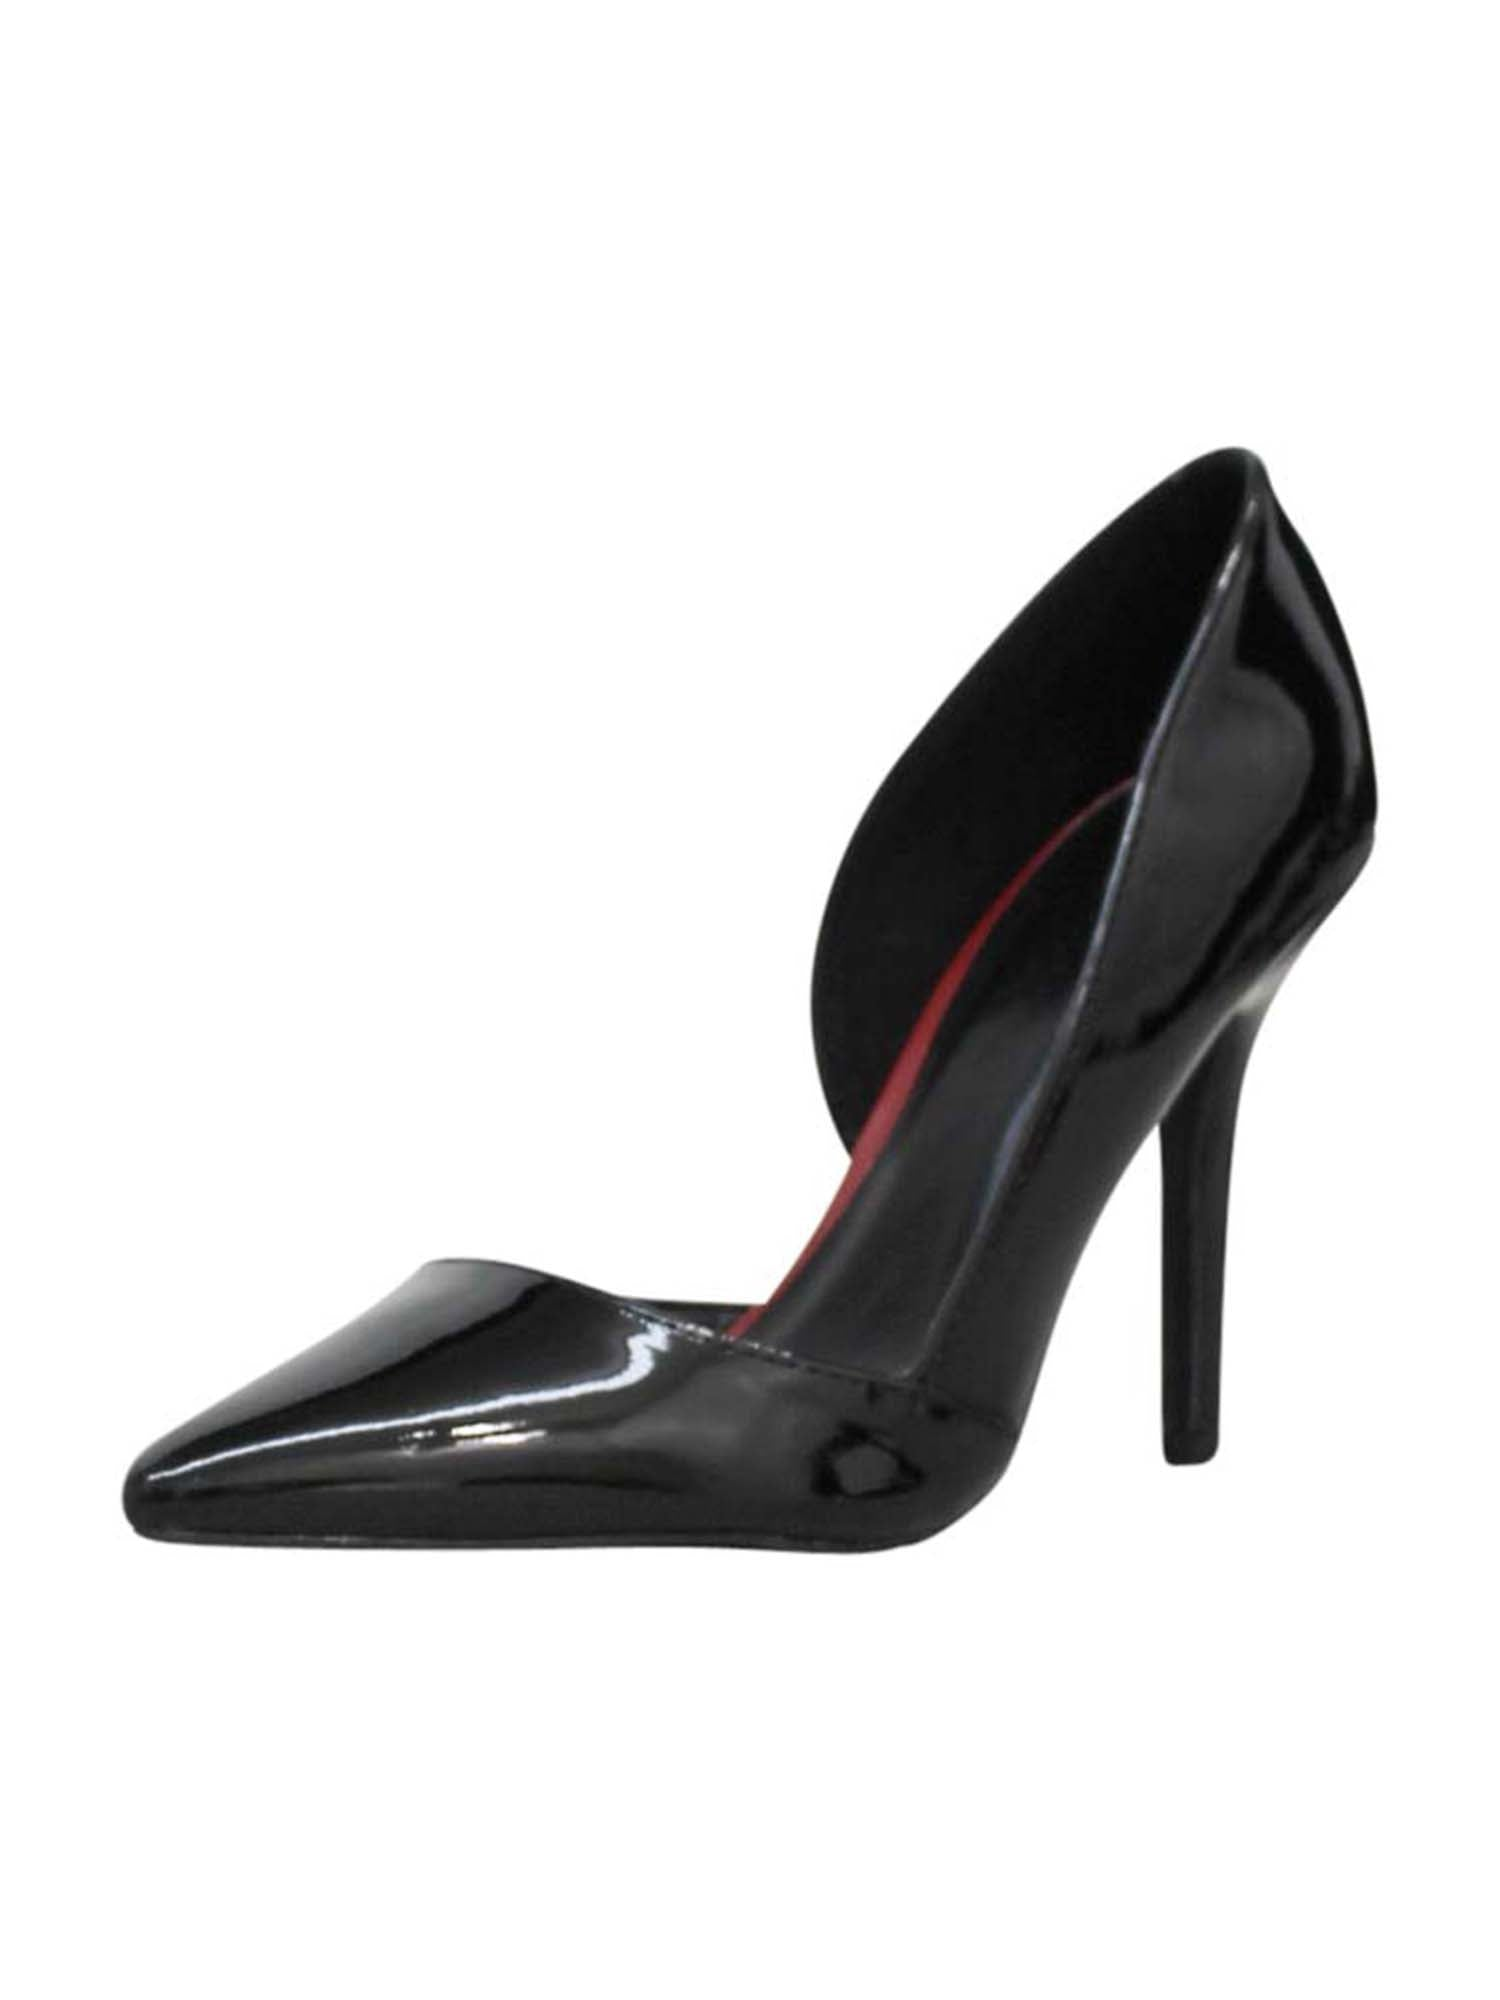 Patent Leather Stiletto Womens High Heel Pumps